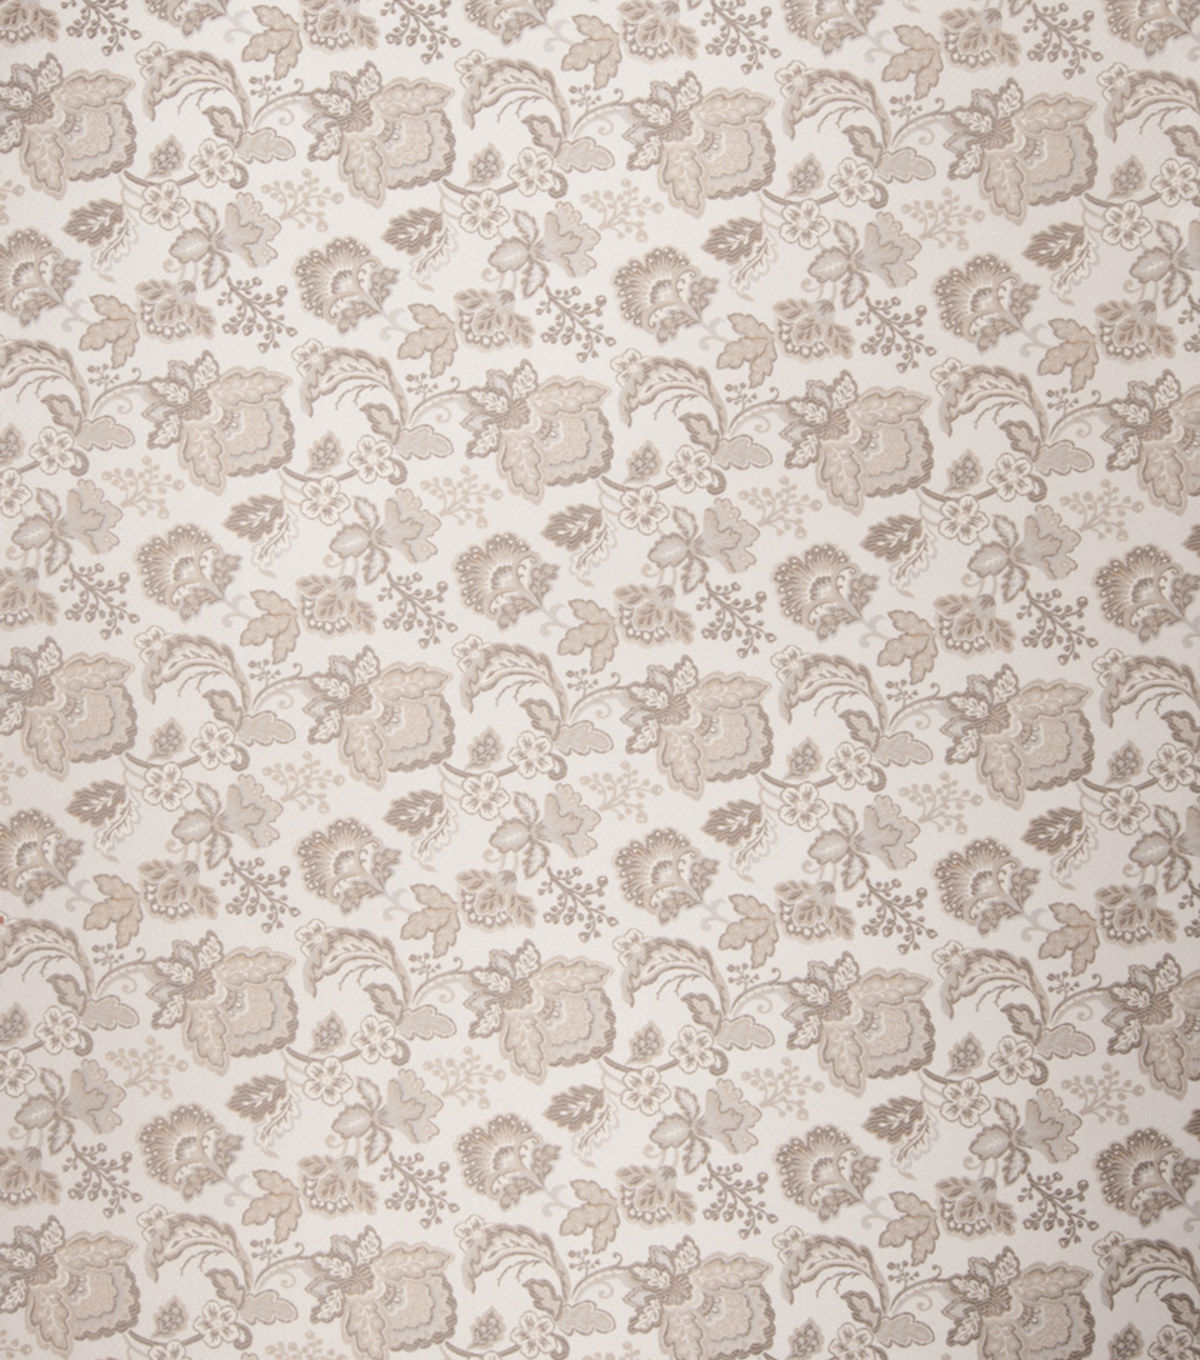 Home Decor 8\u0022x8\u0022 Fabric Swatch-Print Fabric Eaton Square Vintage Tan